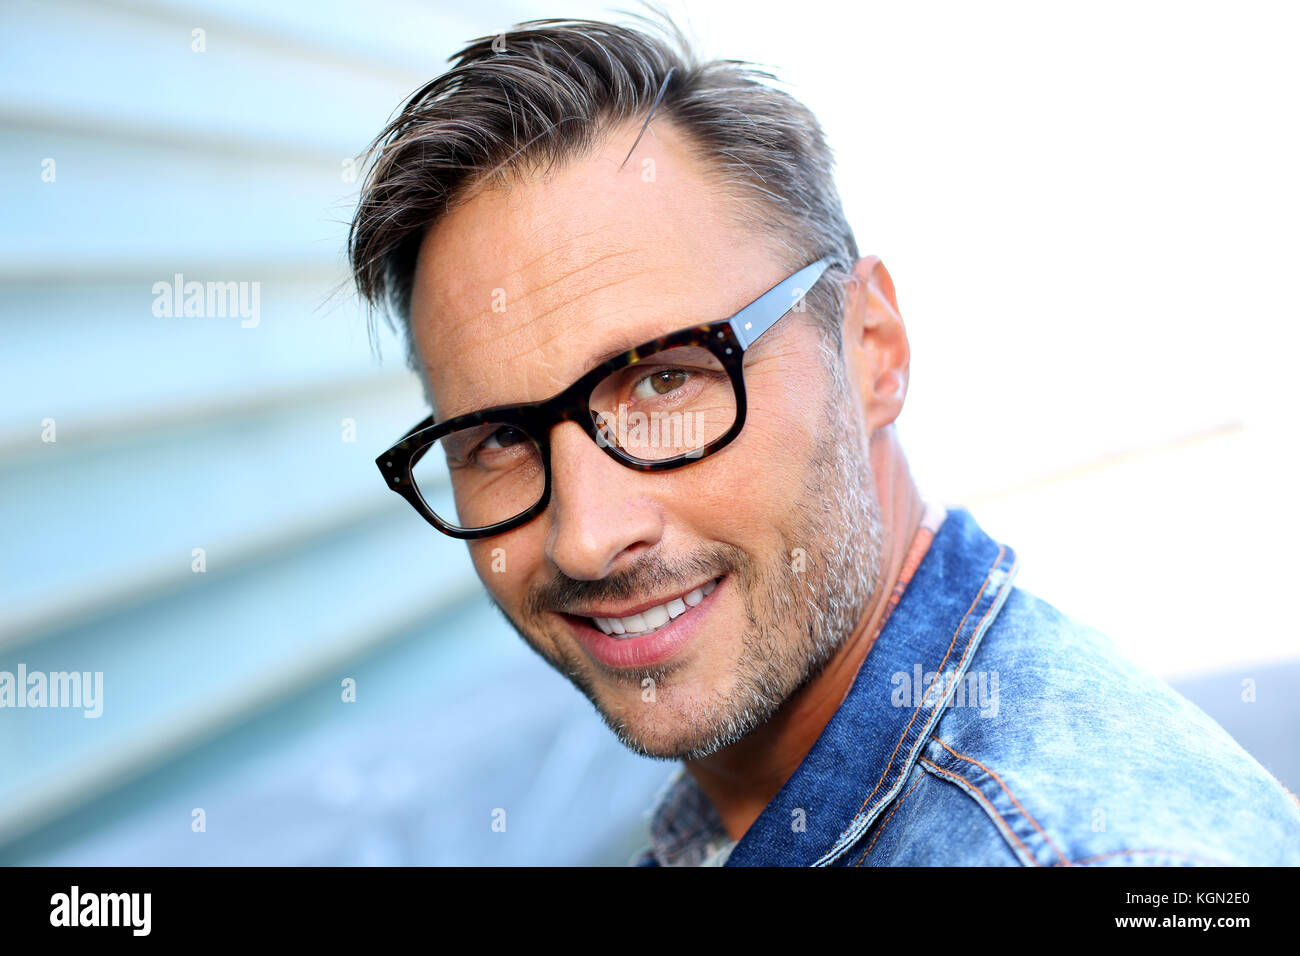 dd4afc805eb Smiling man wearing eyeglasses and blue jeans jacket Stock Photo ...